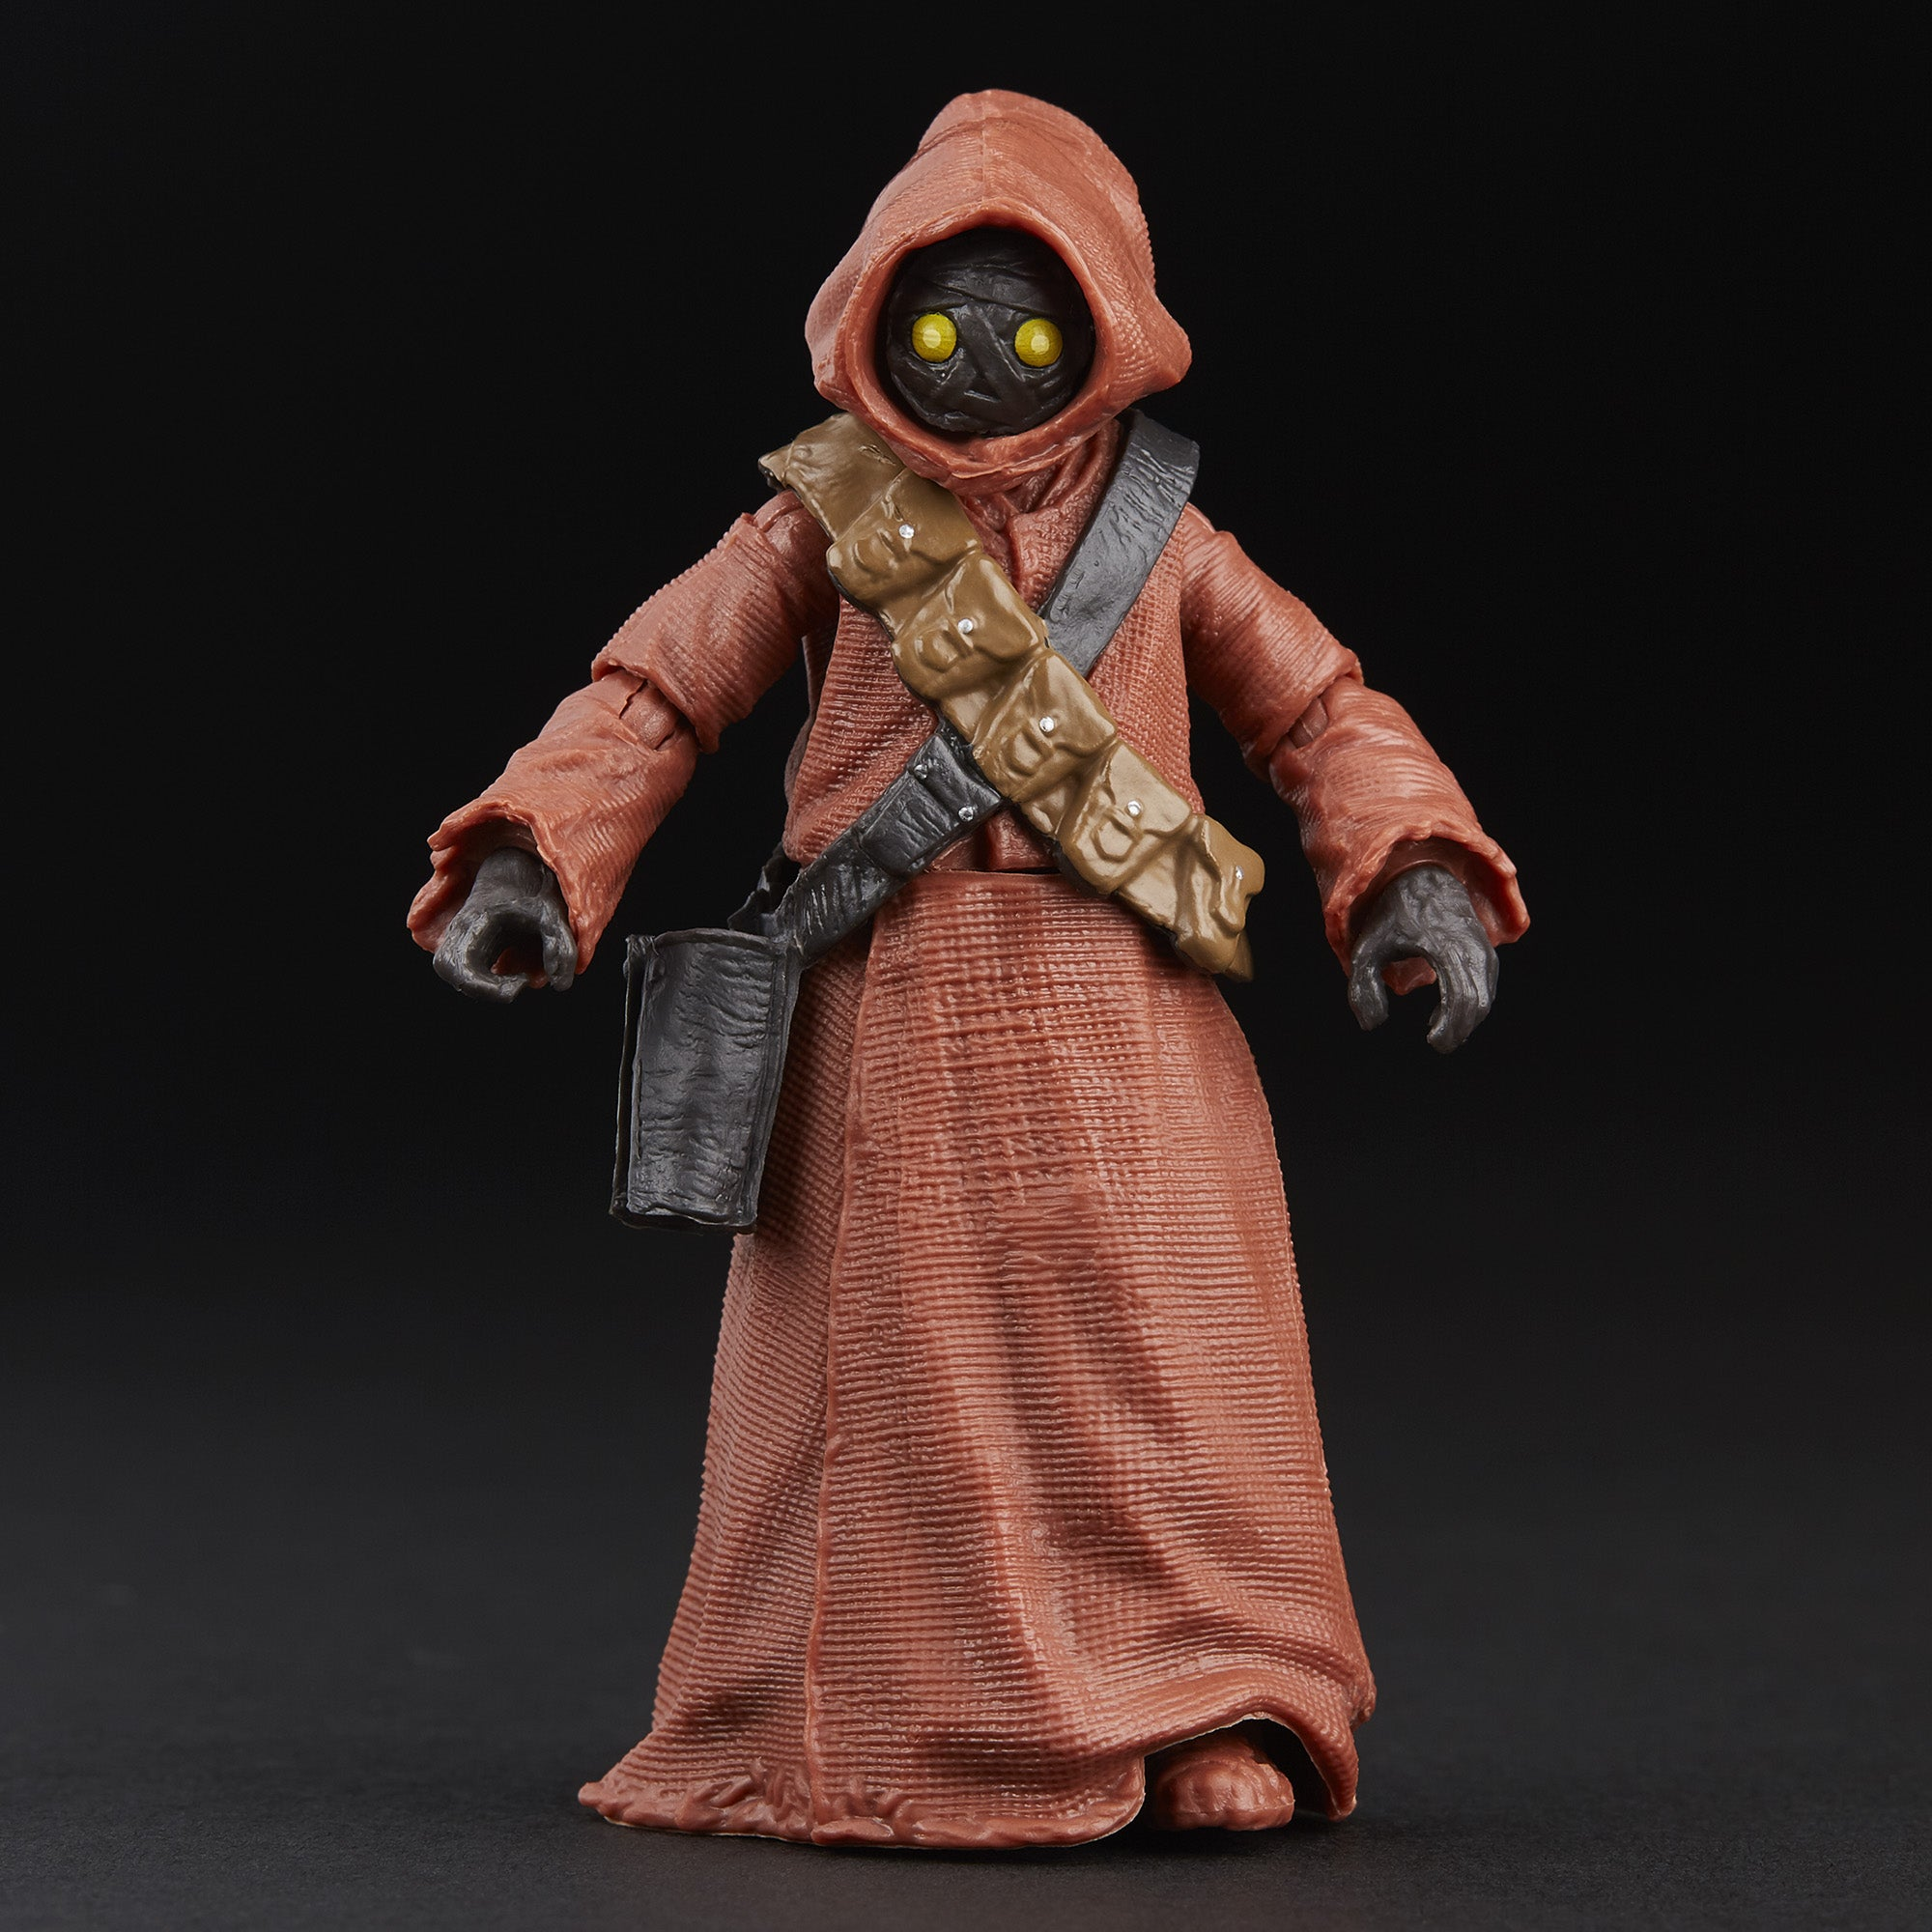 """Star Wars The Vintage Collection A New Hope Jawa Toy 3.75/"""" Scale Action Figure,"""